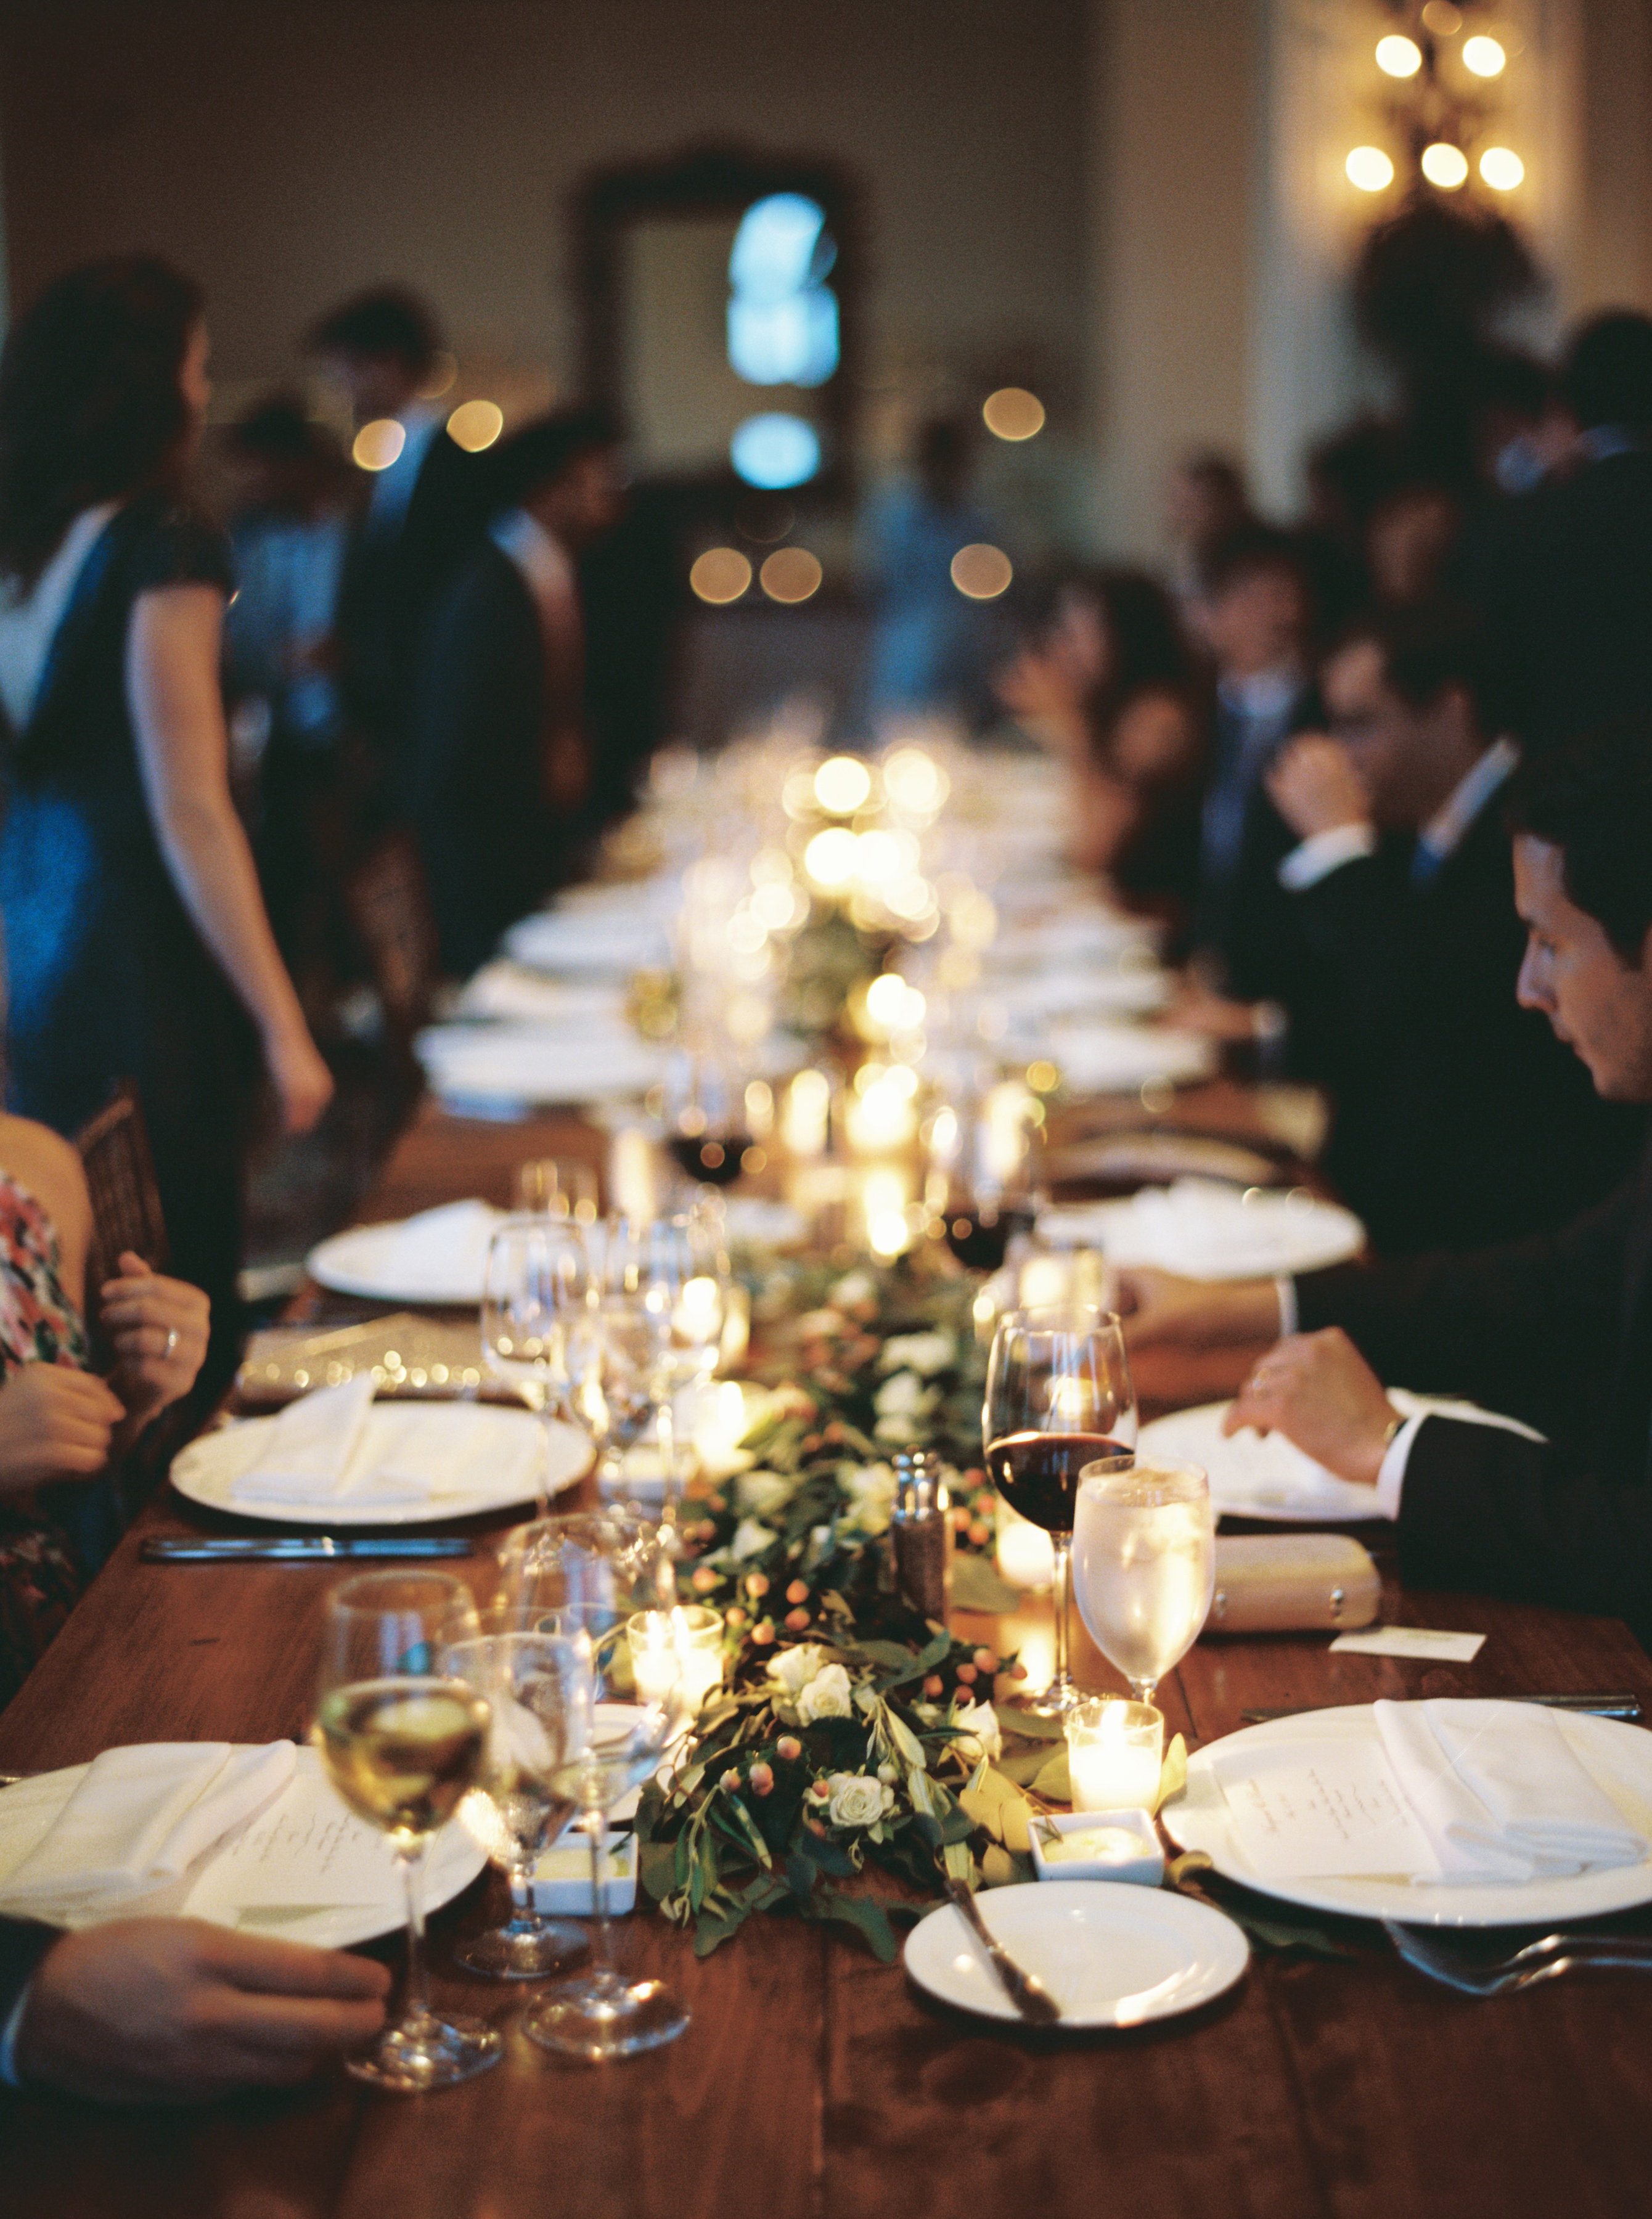 Guests at long dining table